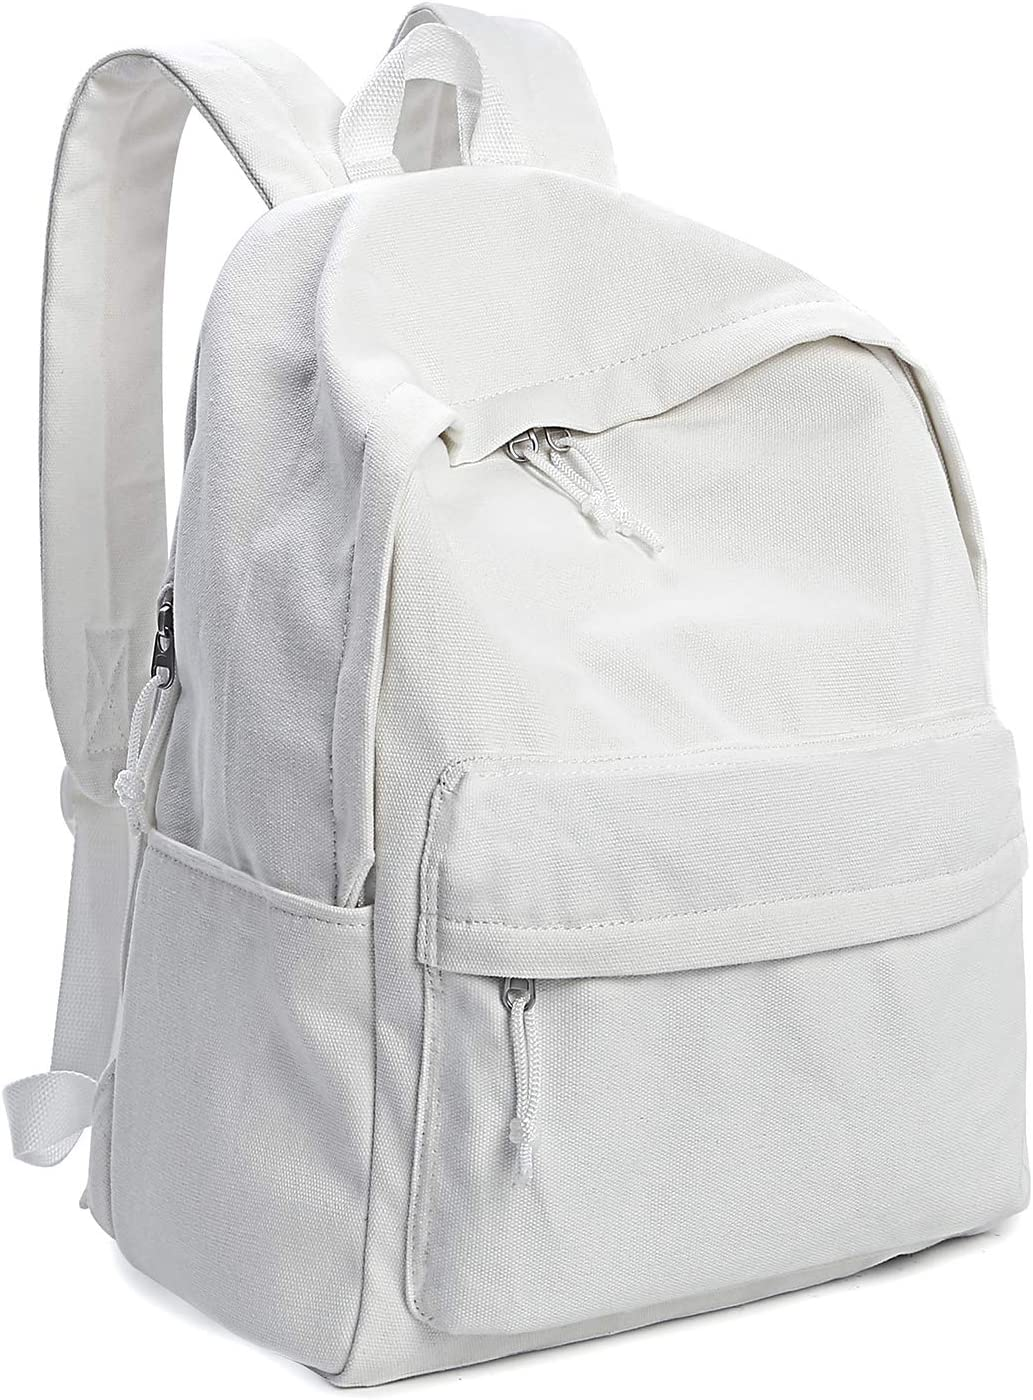 Zicac Unisex DIY Canvas Backpack Daypack Satchel Backpack White, New Upgrade With Side Pocket